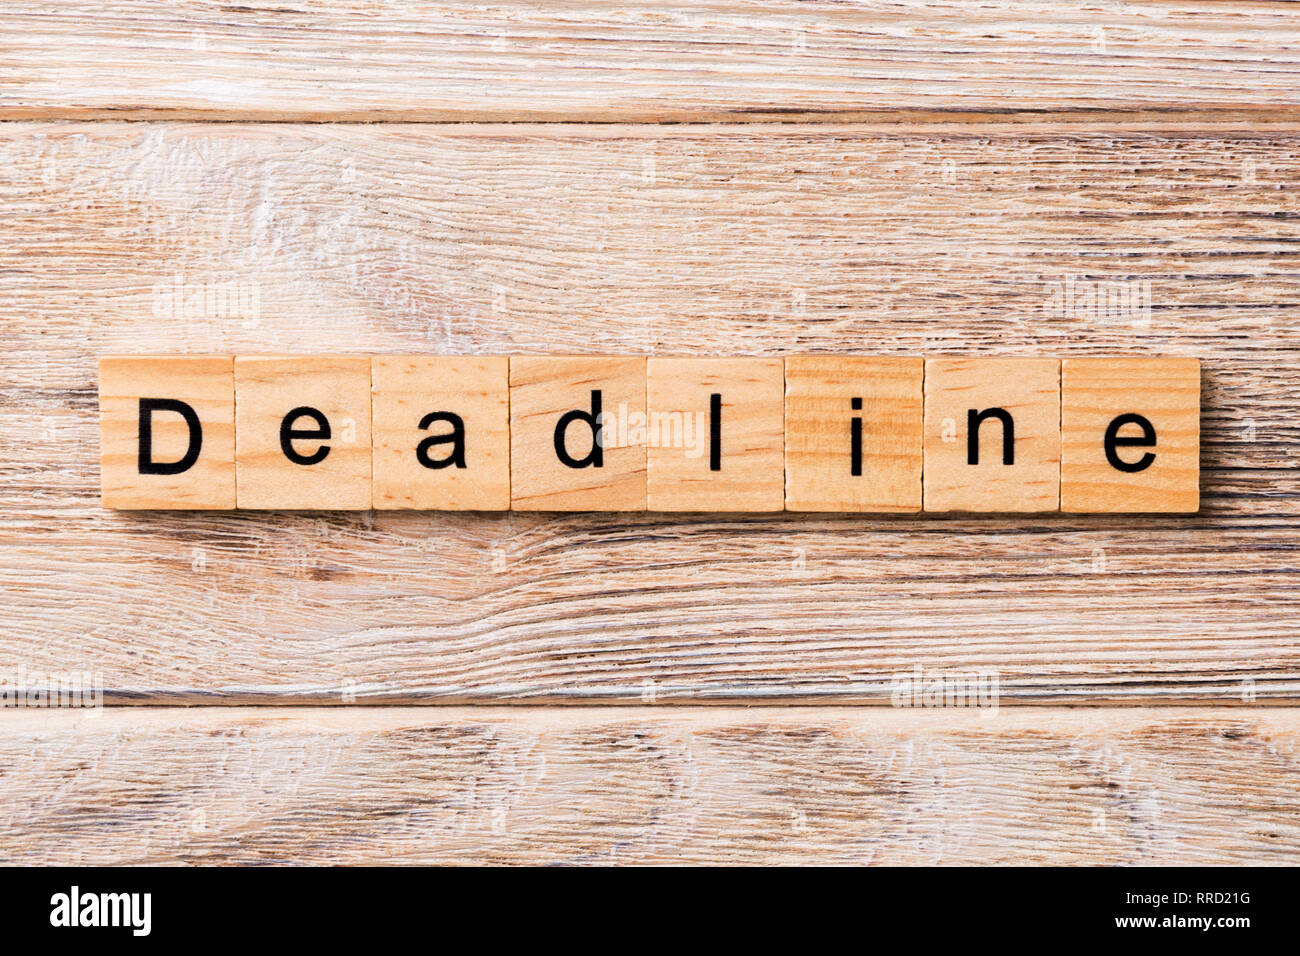 DEADLINE word written on wood block. DEADLINE text on wooden table for your desing, concept. - Stock Image